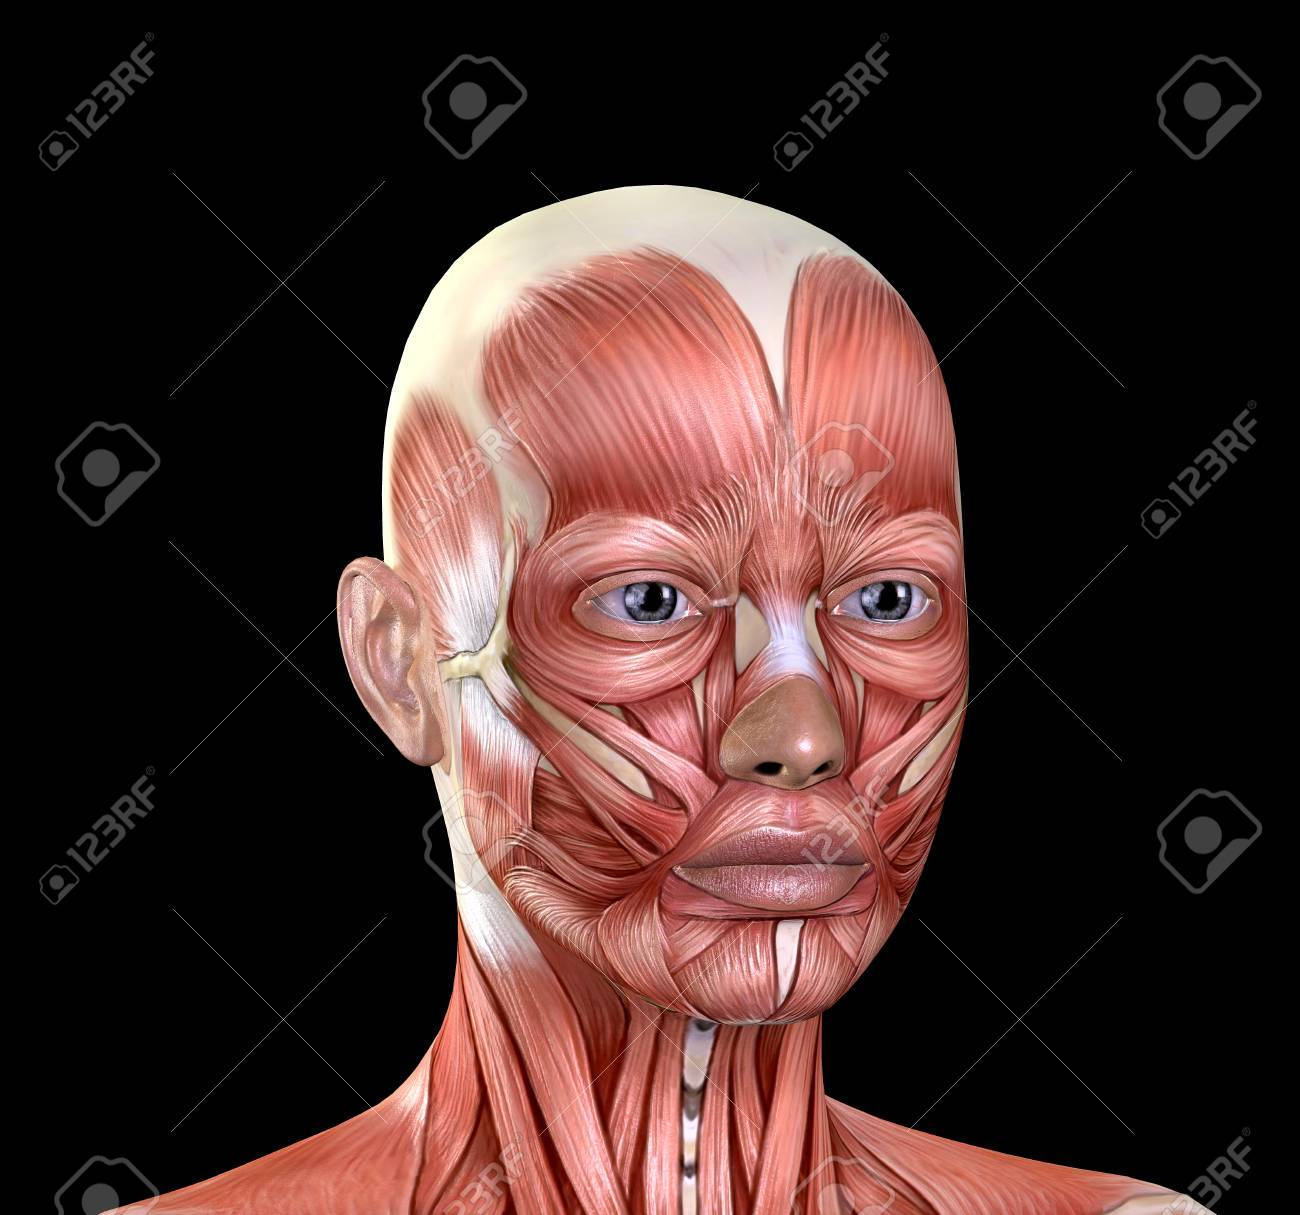 Female Face Muscles Anatomy Isolated On Black Background Stock Photo ...